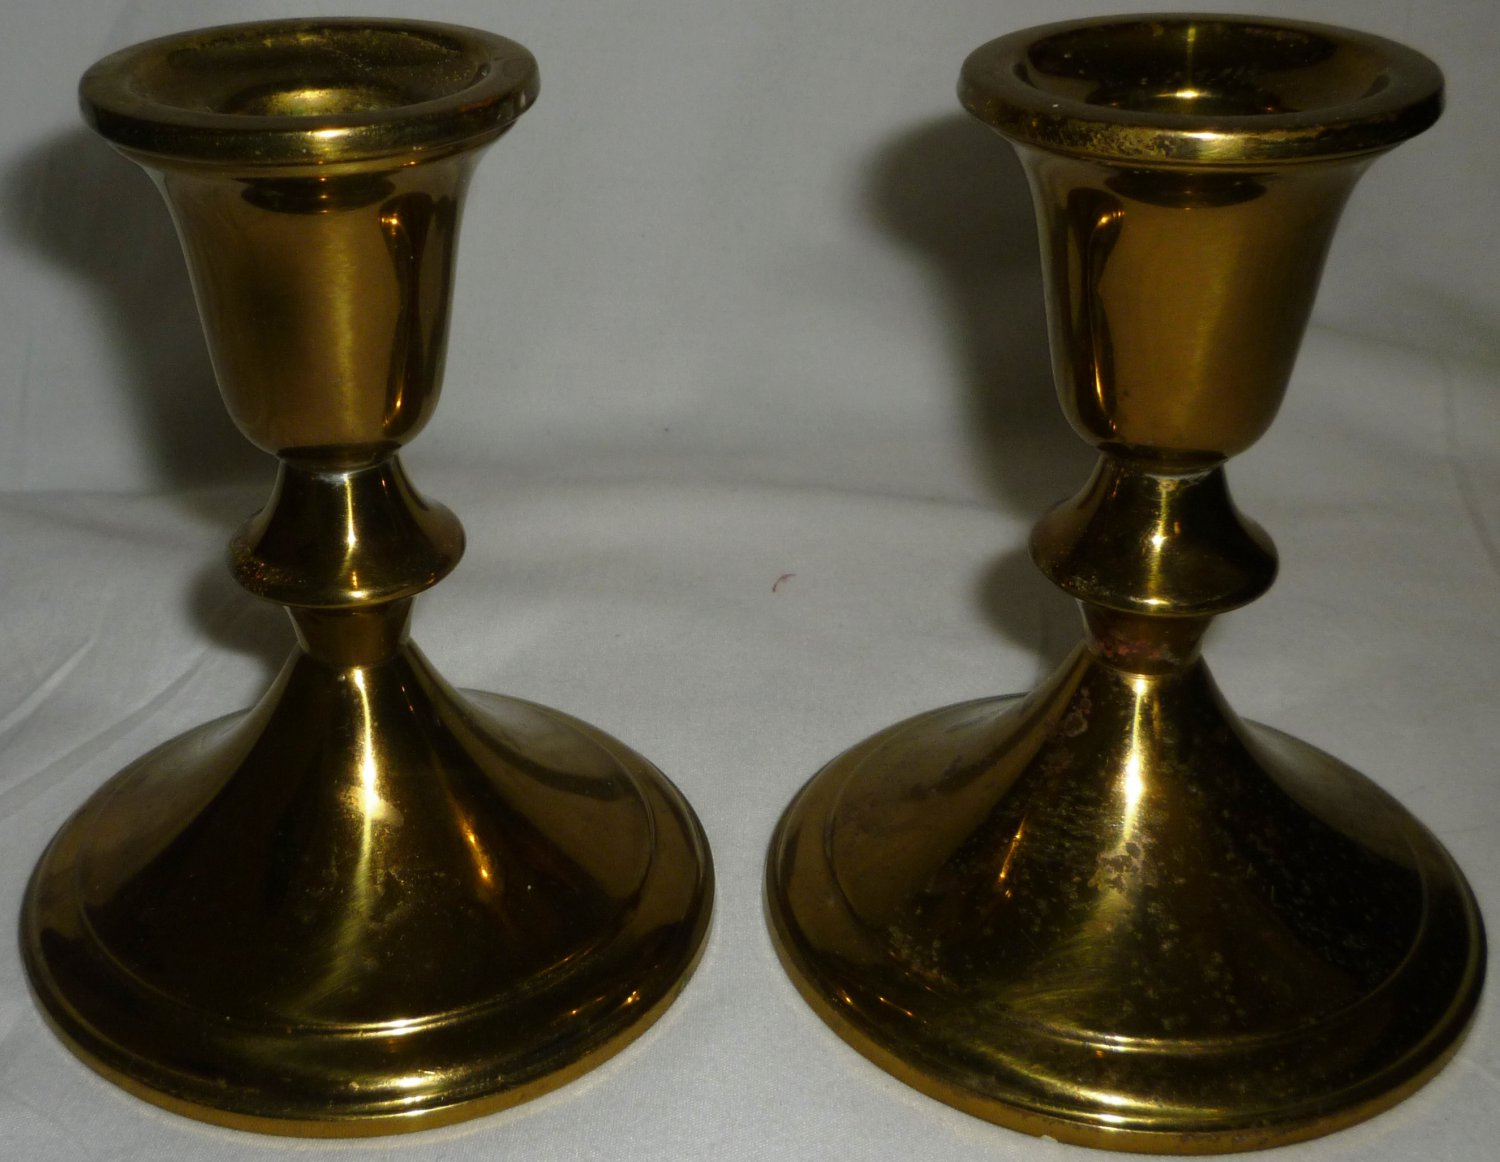 VINTAGE BRASS TOWLE TAPER CANDLE HOLDER SET OF 2 MADE IN USA